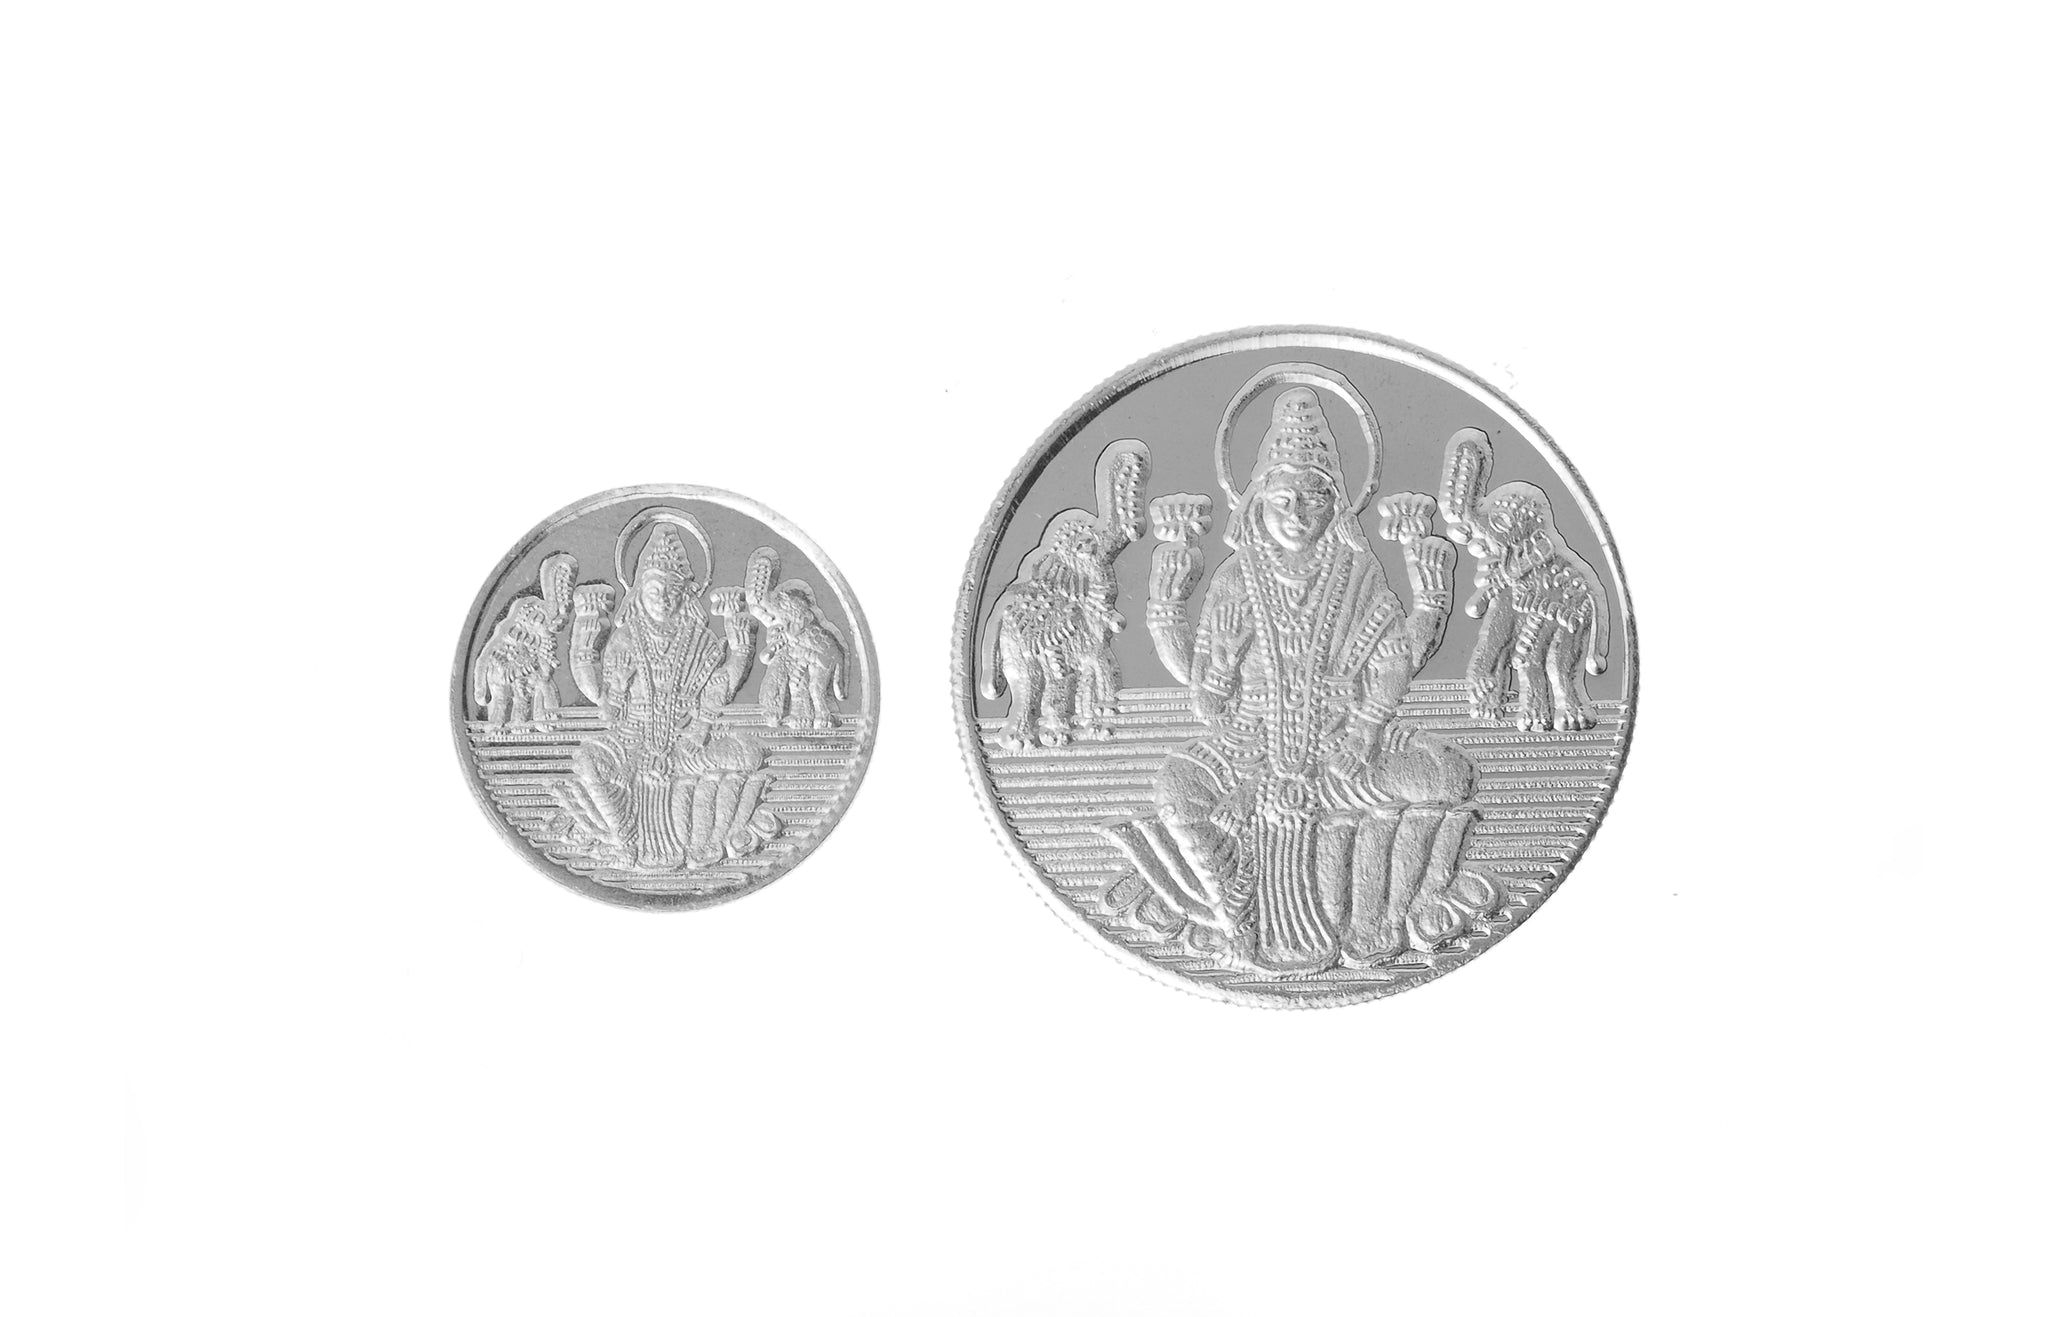 Sterling Silver Coin featuring Lakshmi and Ganesh (GLG5-20)